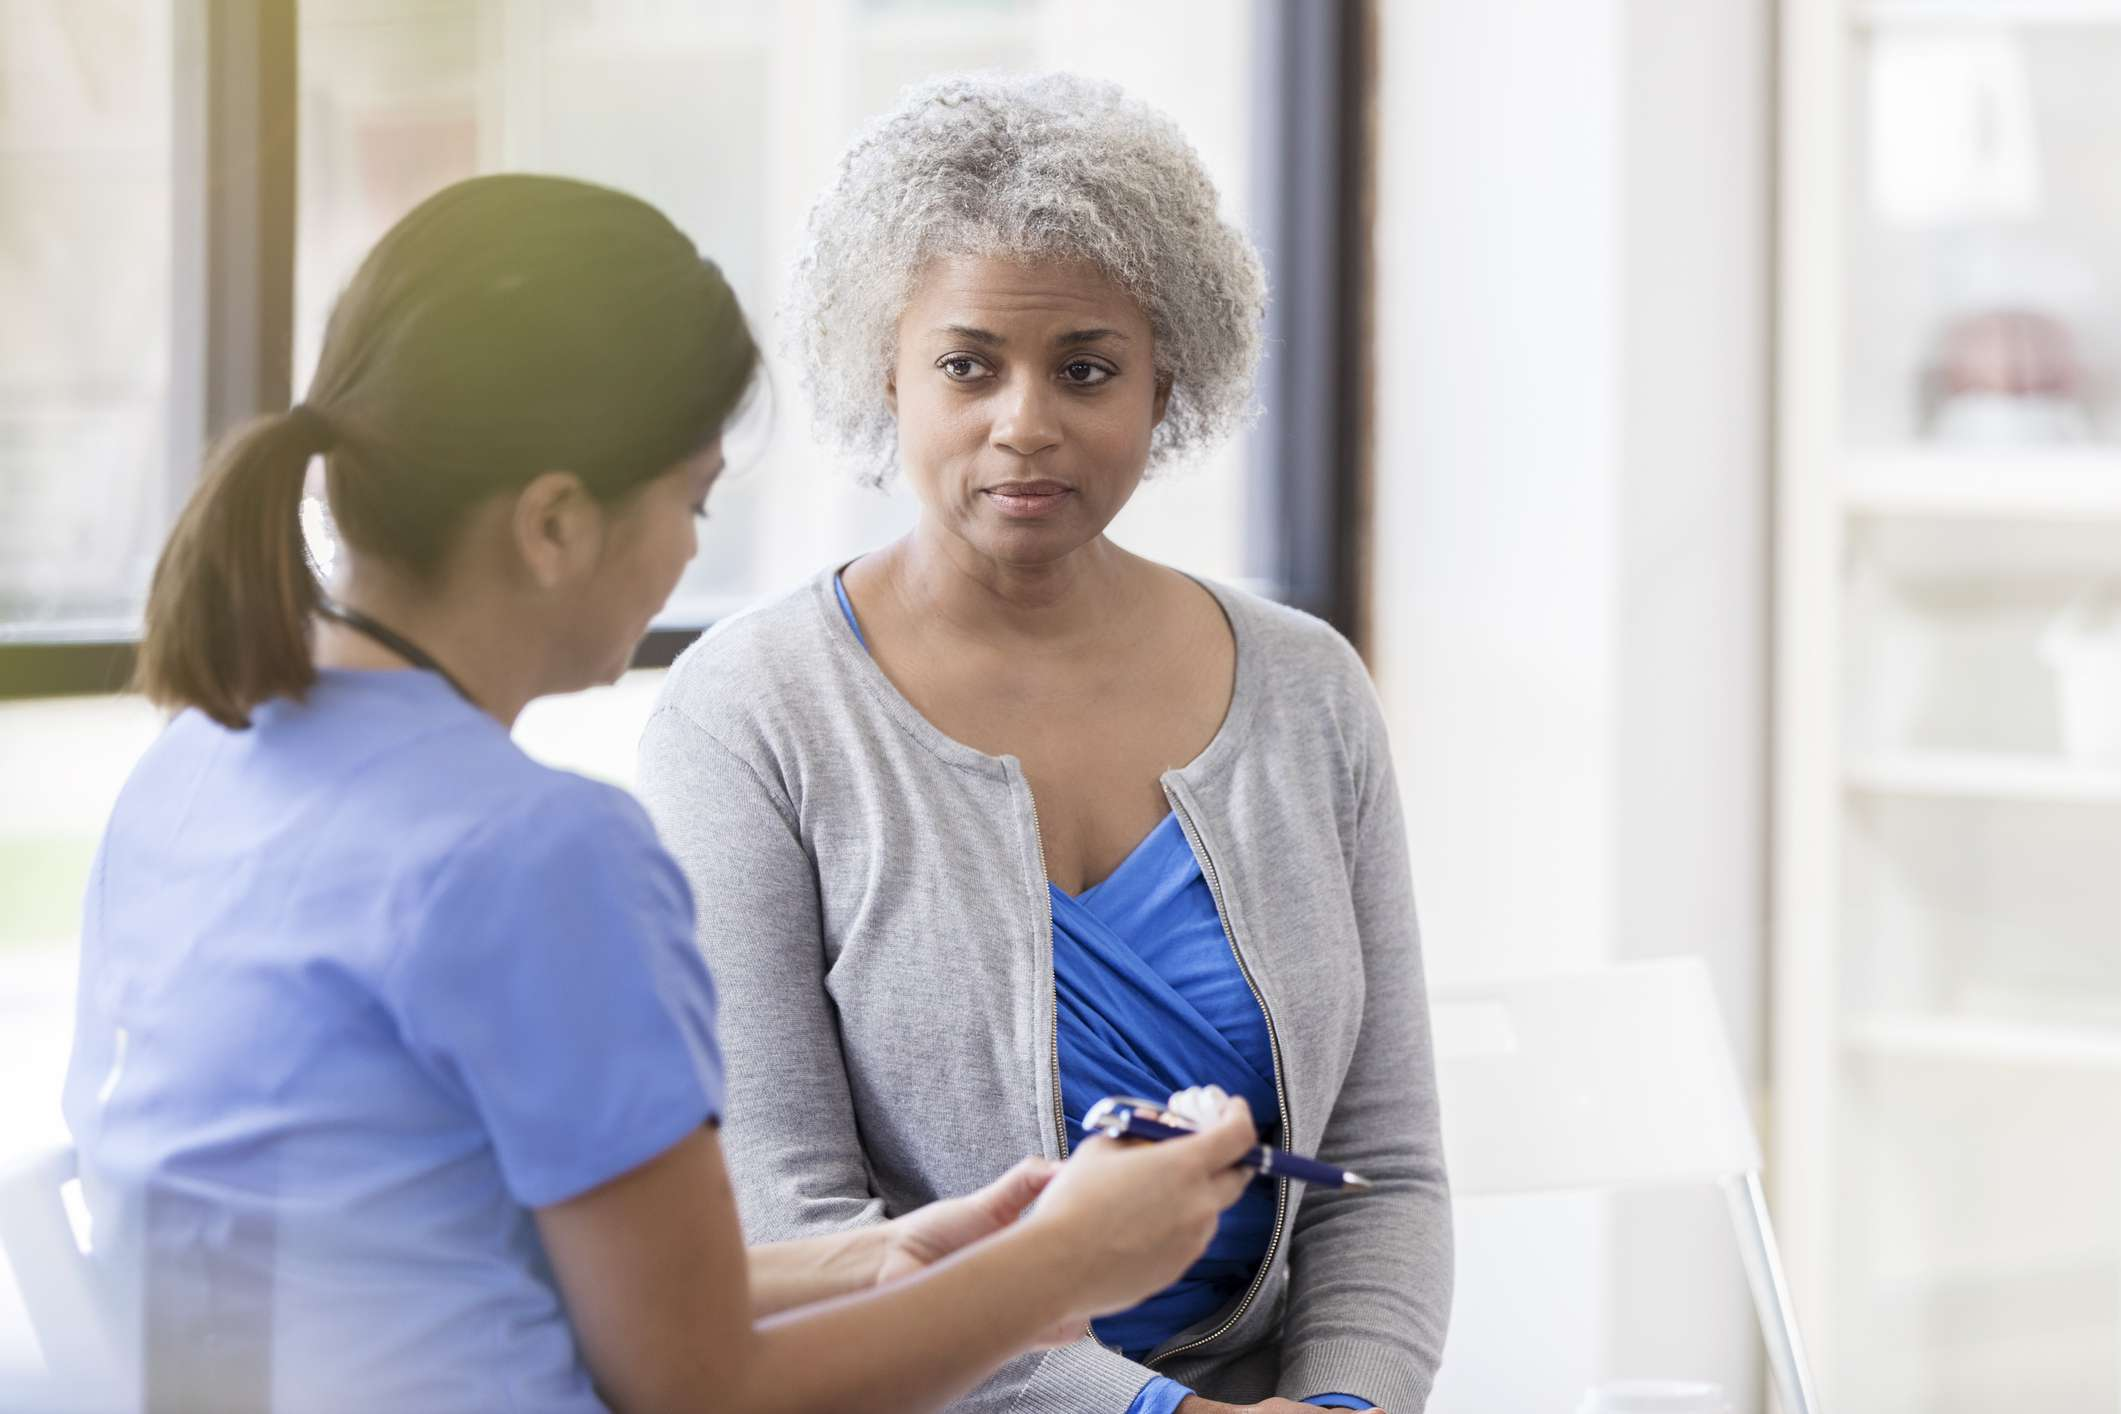 Senior woman listens to doctor's medication instructions